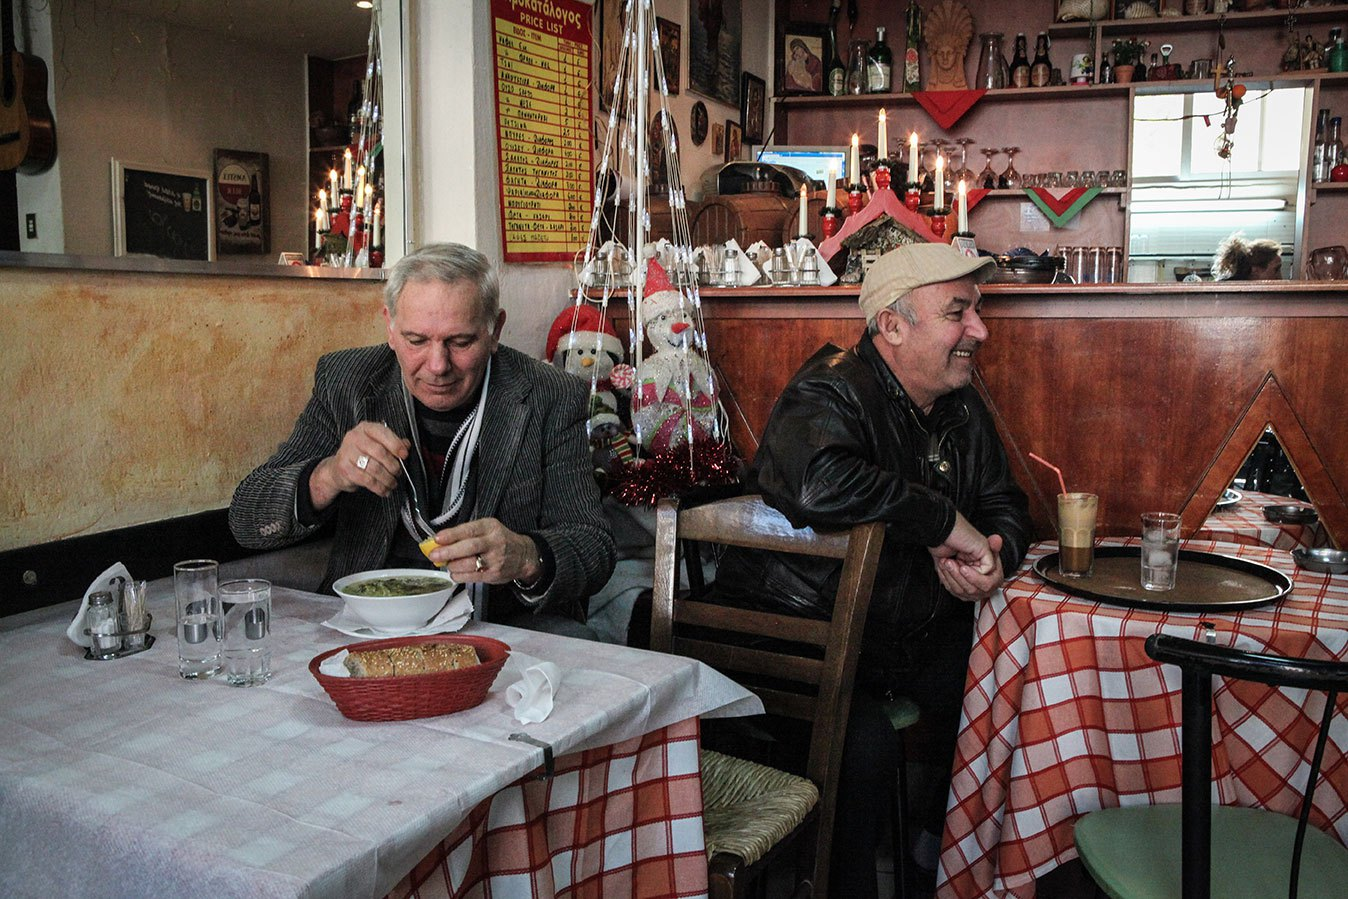 In the poor neighborhood of Xirokrini, a small restaurant operated by an Albanian lady is never empty. She offers a combination of a main dish or soup and a drink for the reasonable price of 3 euro.